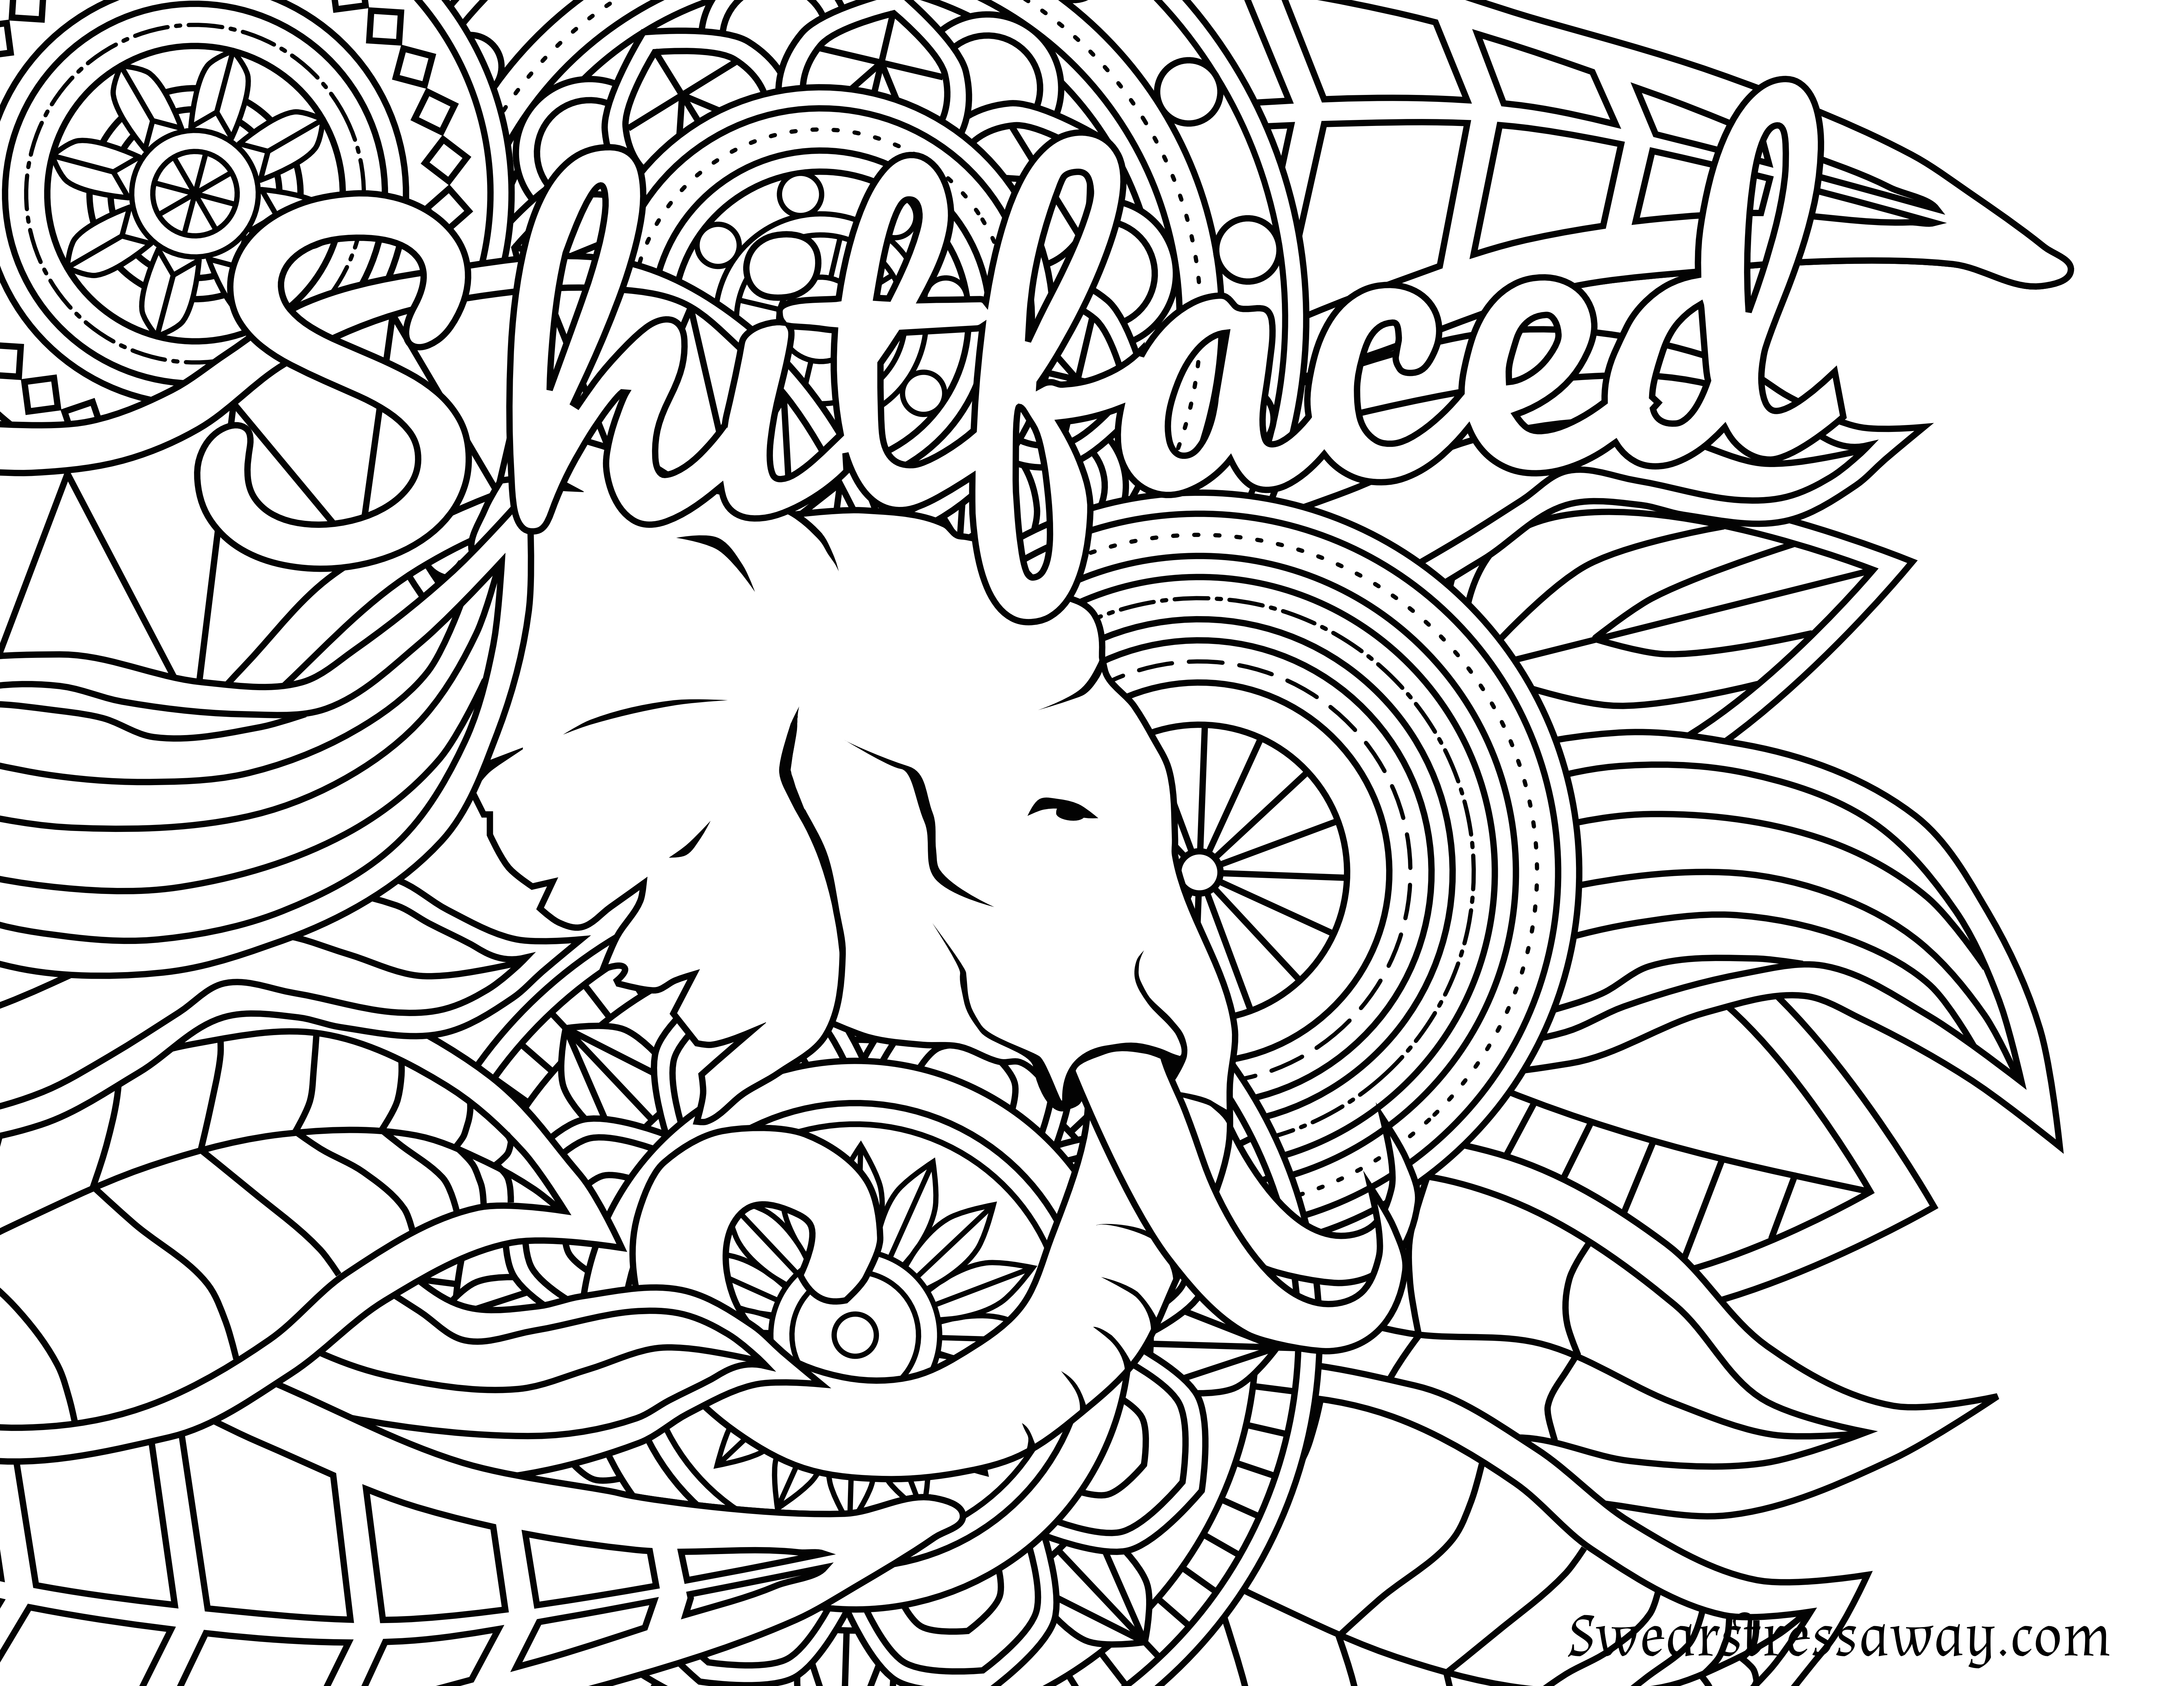 Coloring Pages : Free Printable Coloring Page Shitfaced Swear Word - Free Printable Swear Word Coloring Pages